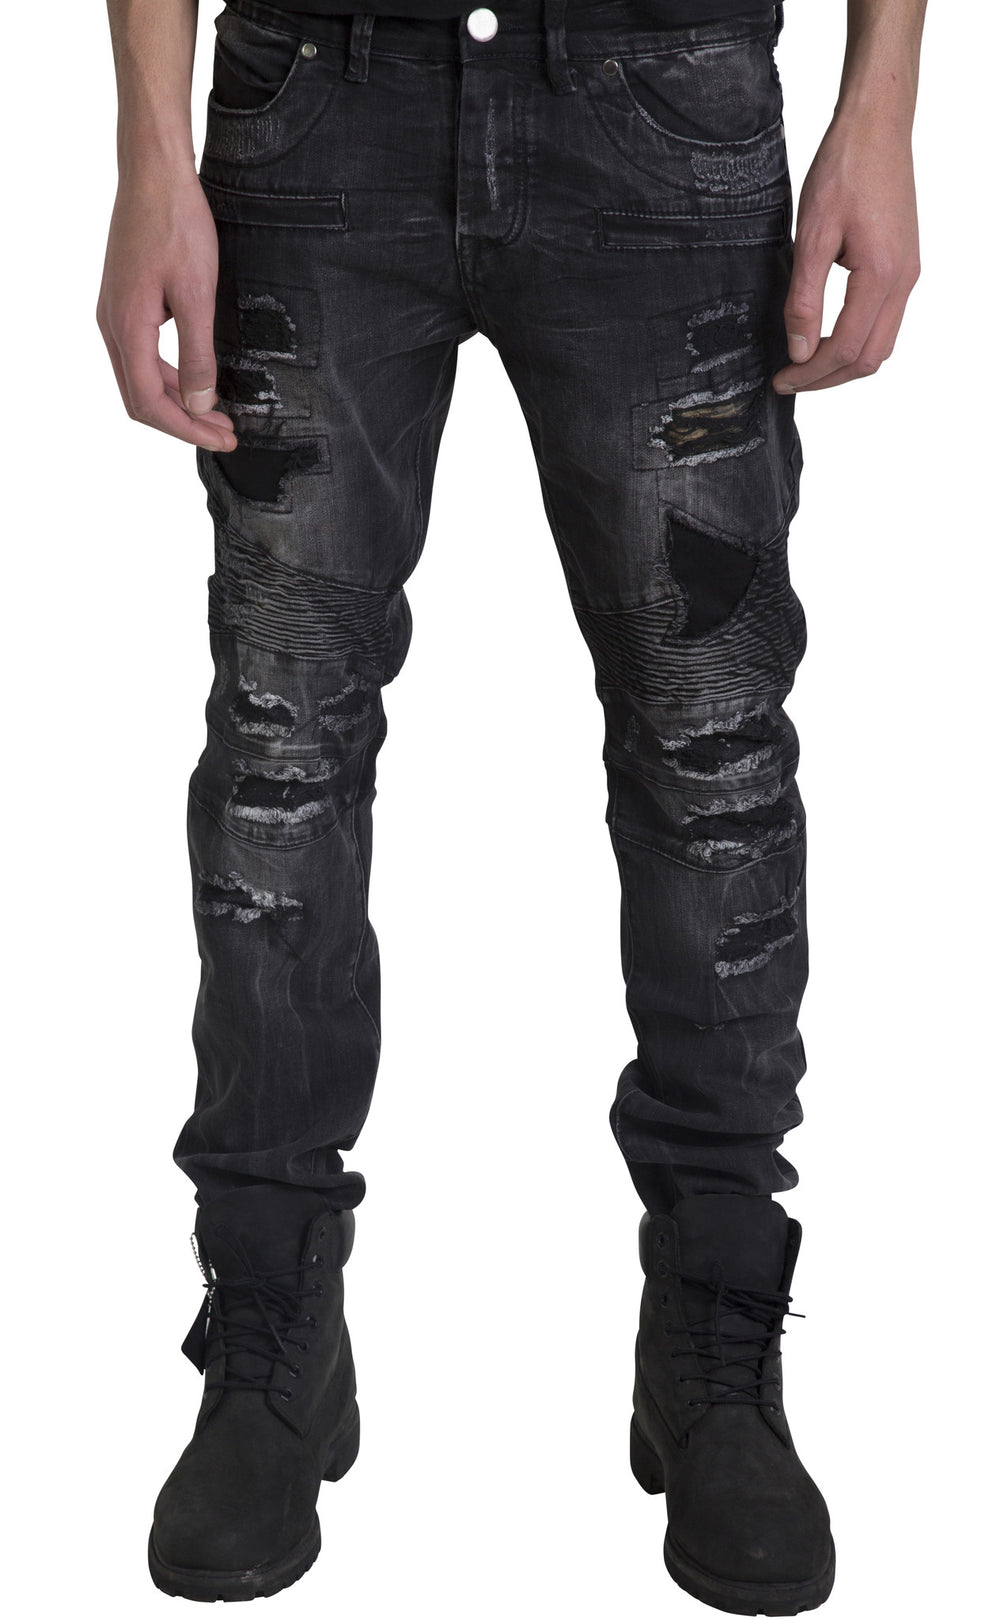 Black Rock Washed Distressed Biker Jeans